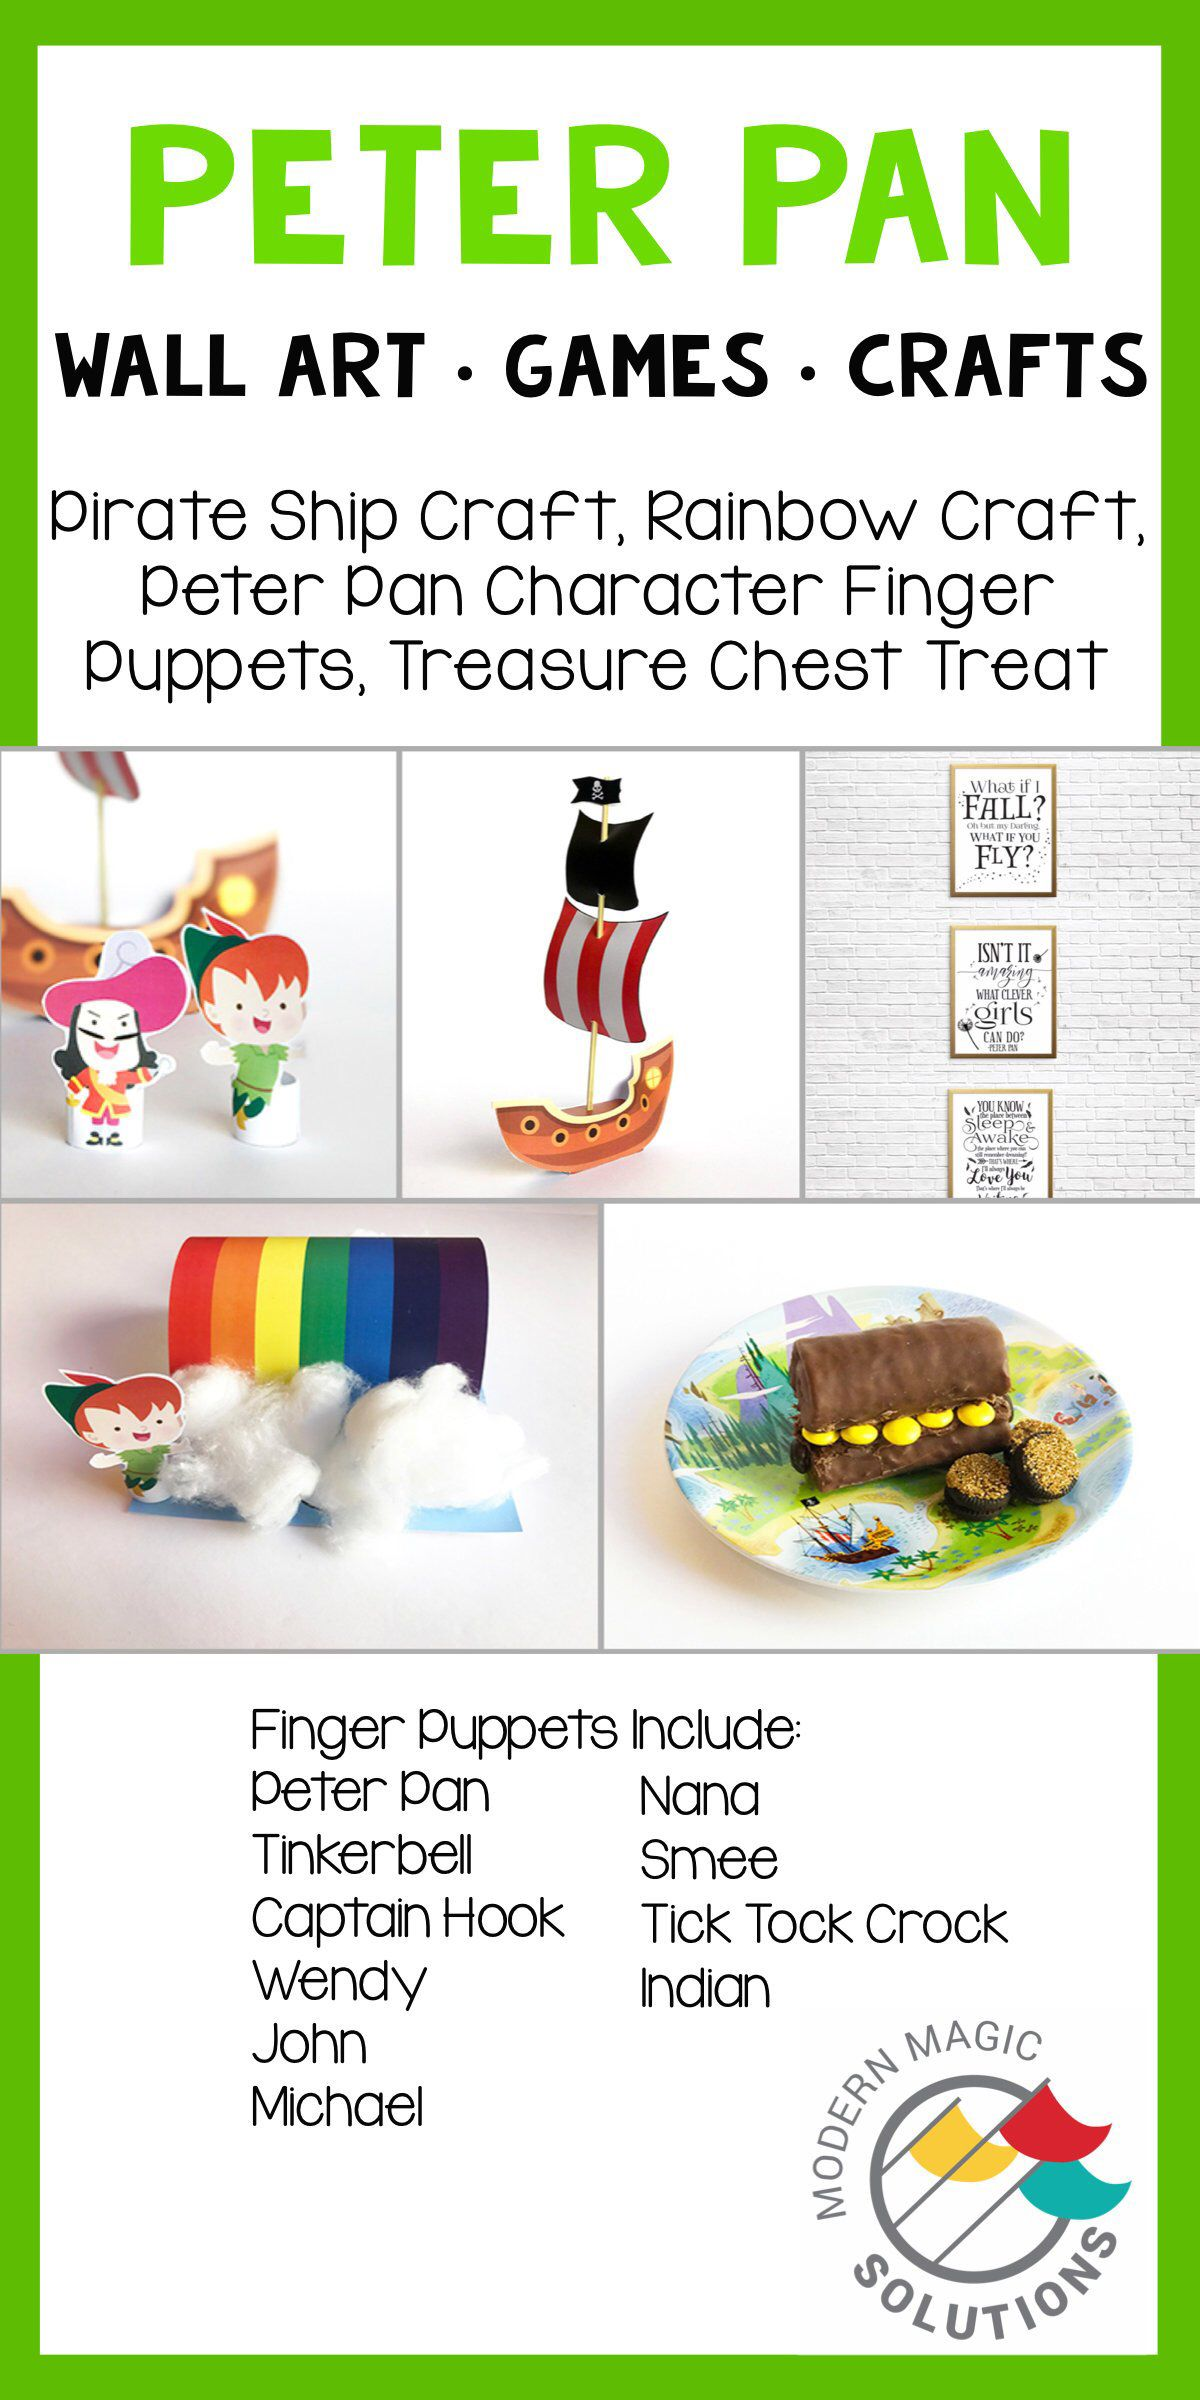 Peter Pan Themed Printable Art Quotes Games Crafts